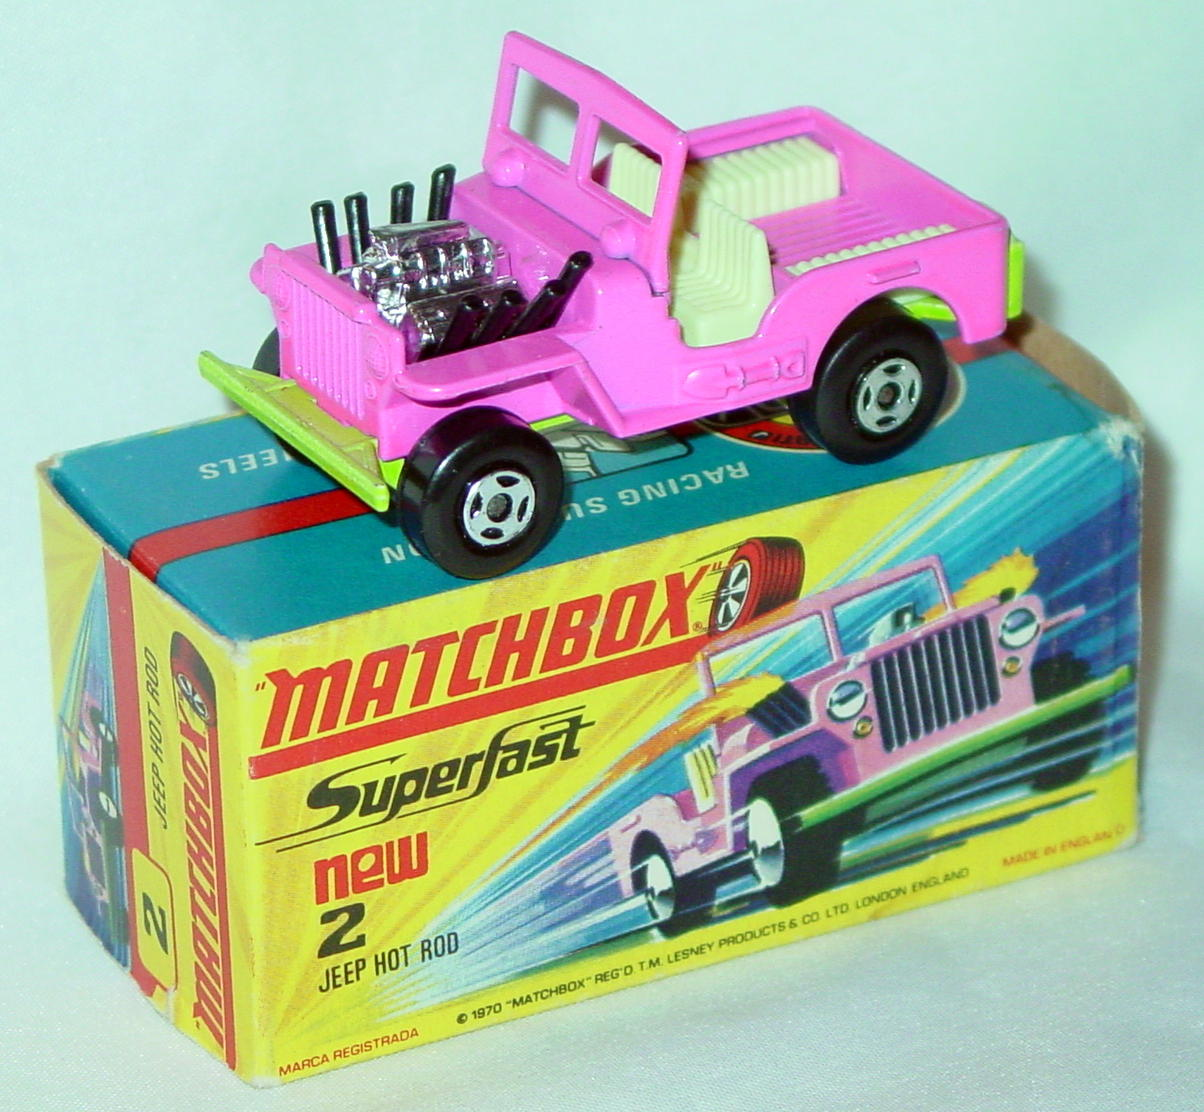 Lesney SuperFast 02 B 1 - Hot Rod Jeep Pink/lt green C9+ H with new